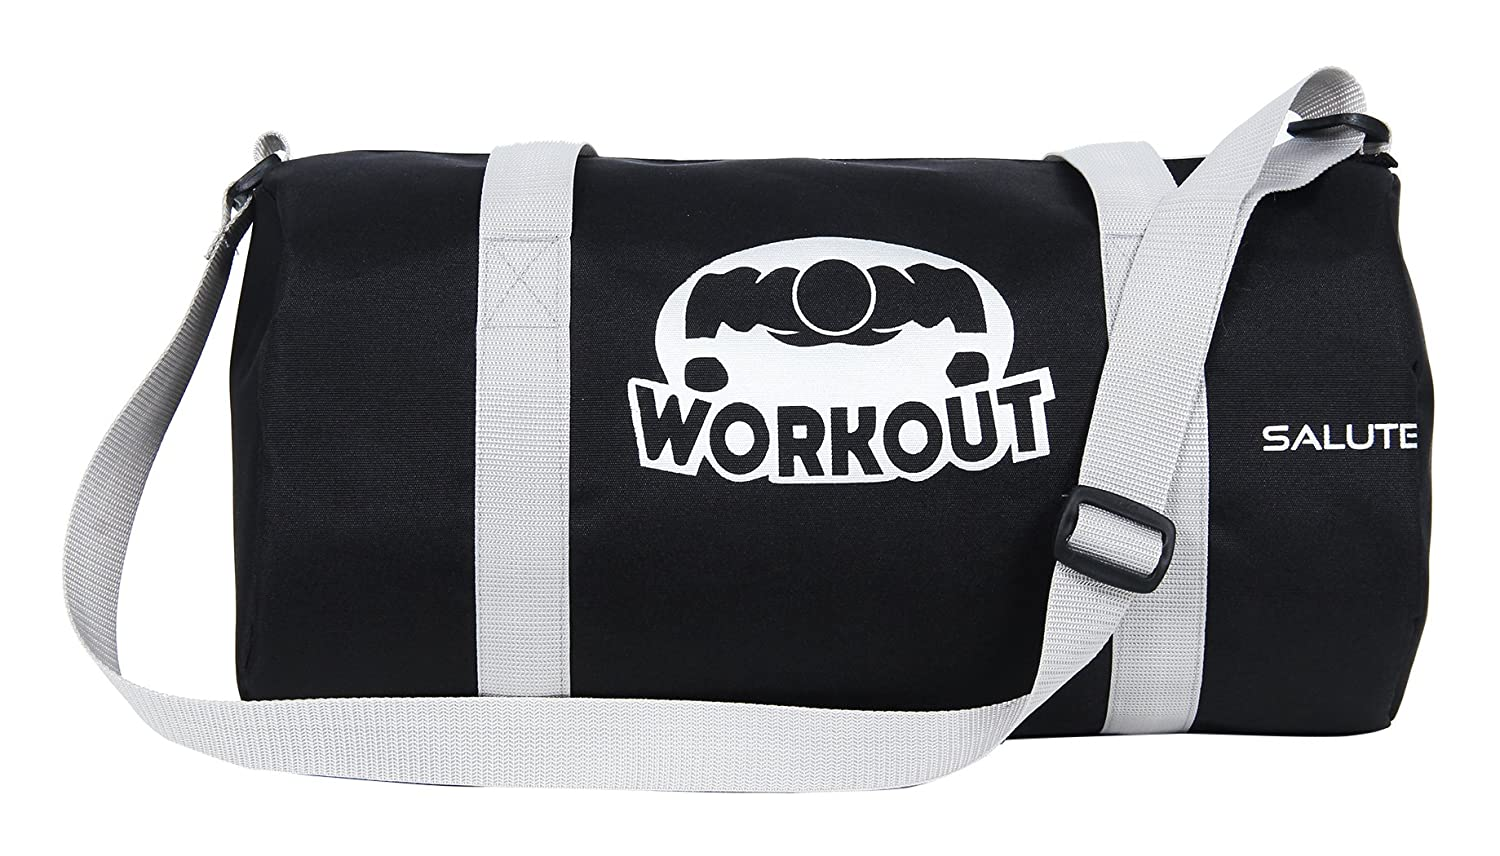 37fcacec0c61 SALUTE HUNK WORKOUT 25L Black Duffle Gym Bag  Amazon.in  Bags ...